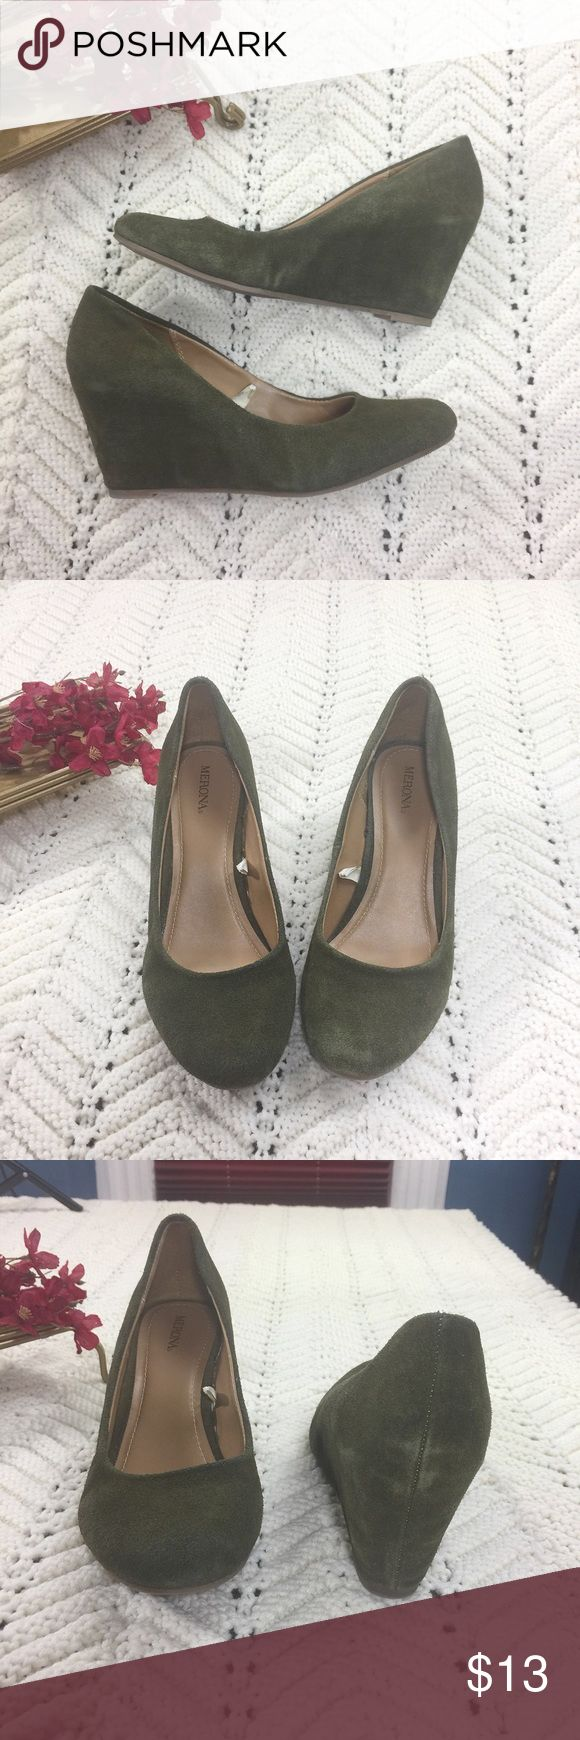 "Santa Sale Merona Faux Suede Green Wedges Merona Faux Suede Green Wedges. Round toe. Green is on the darker side. Material: upper: leather; man made material outsole. Heel: 2.75"". Please look at pictures for evidence of light wear. Good used condition. Merona Shoes Wedges"